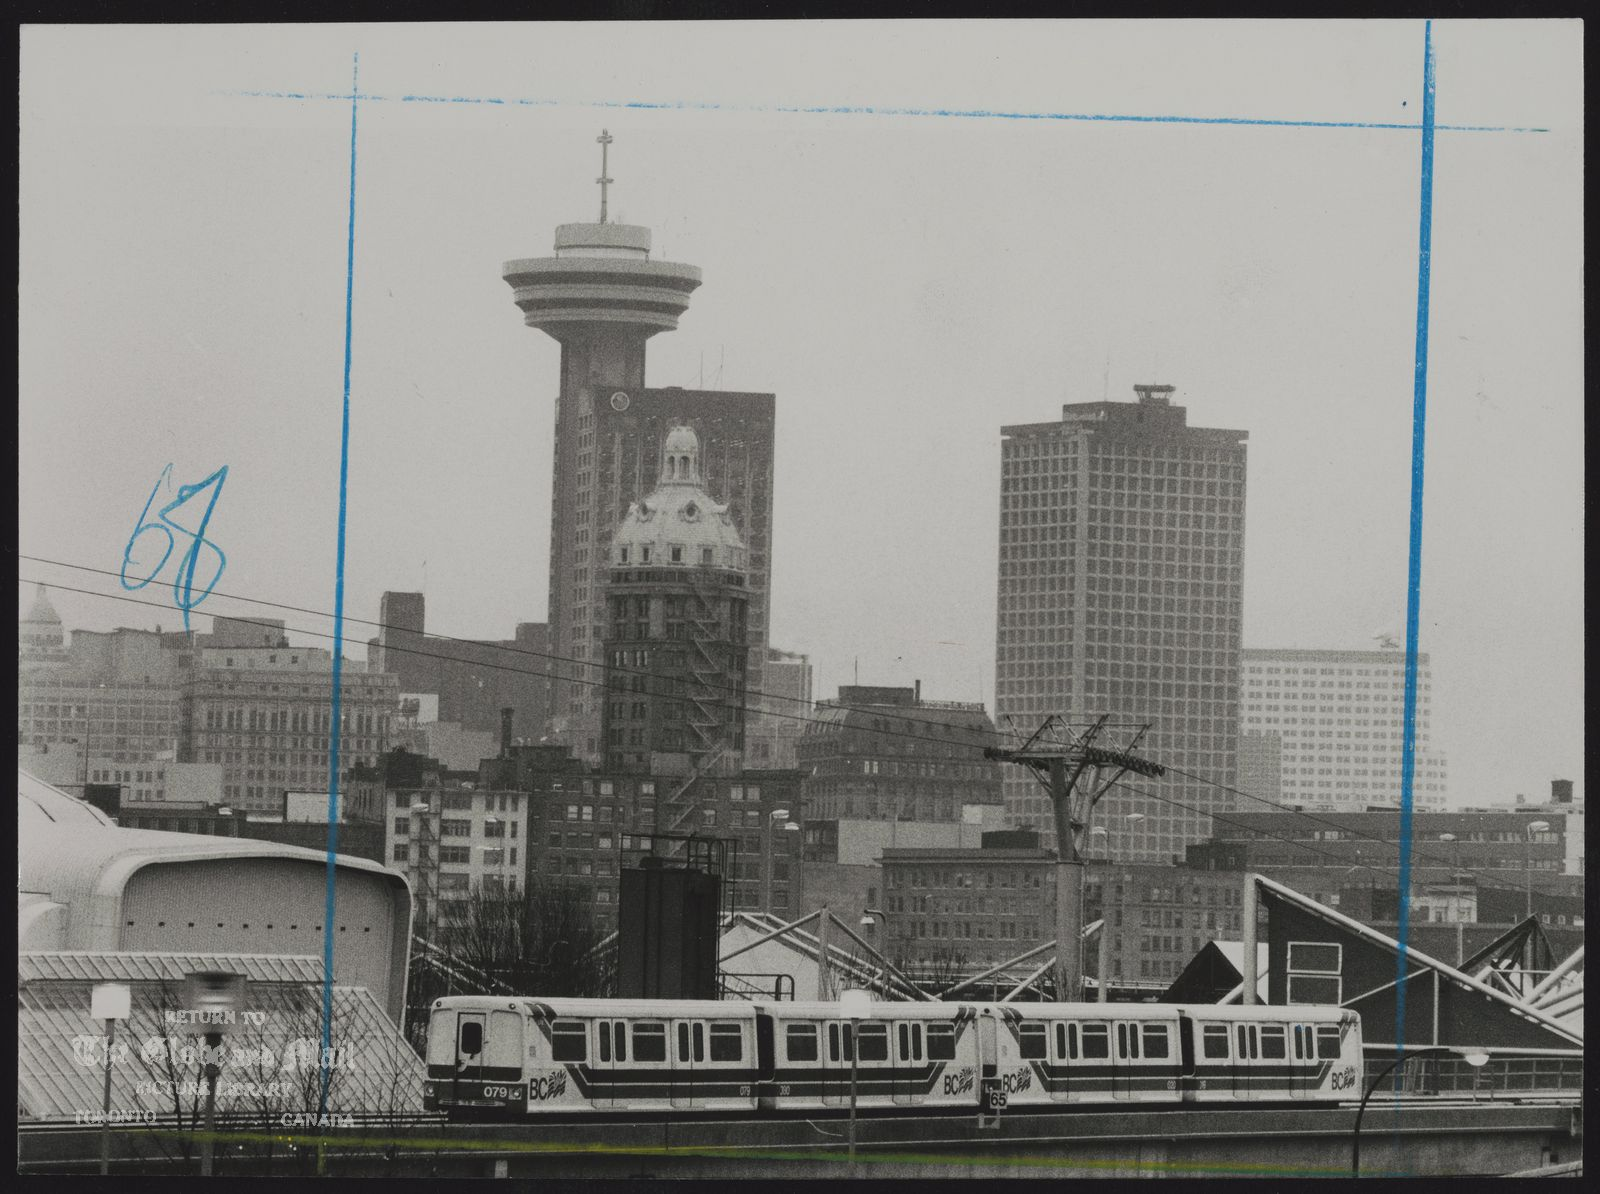 The notes transcribed from the back of this photograph are as follows: VANCOUVER city